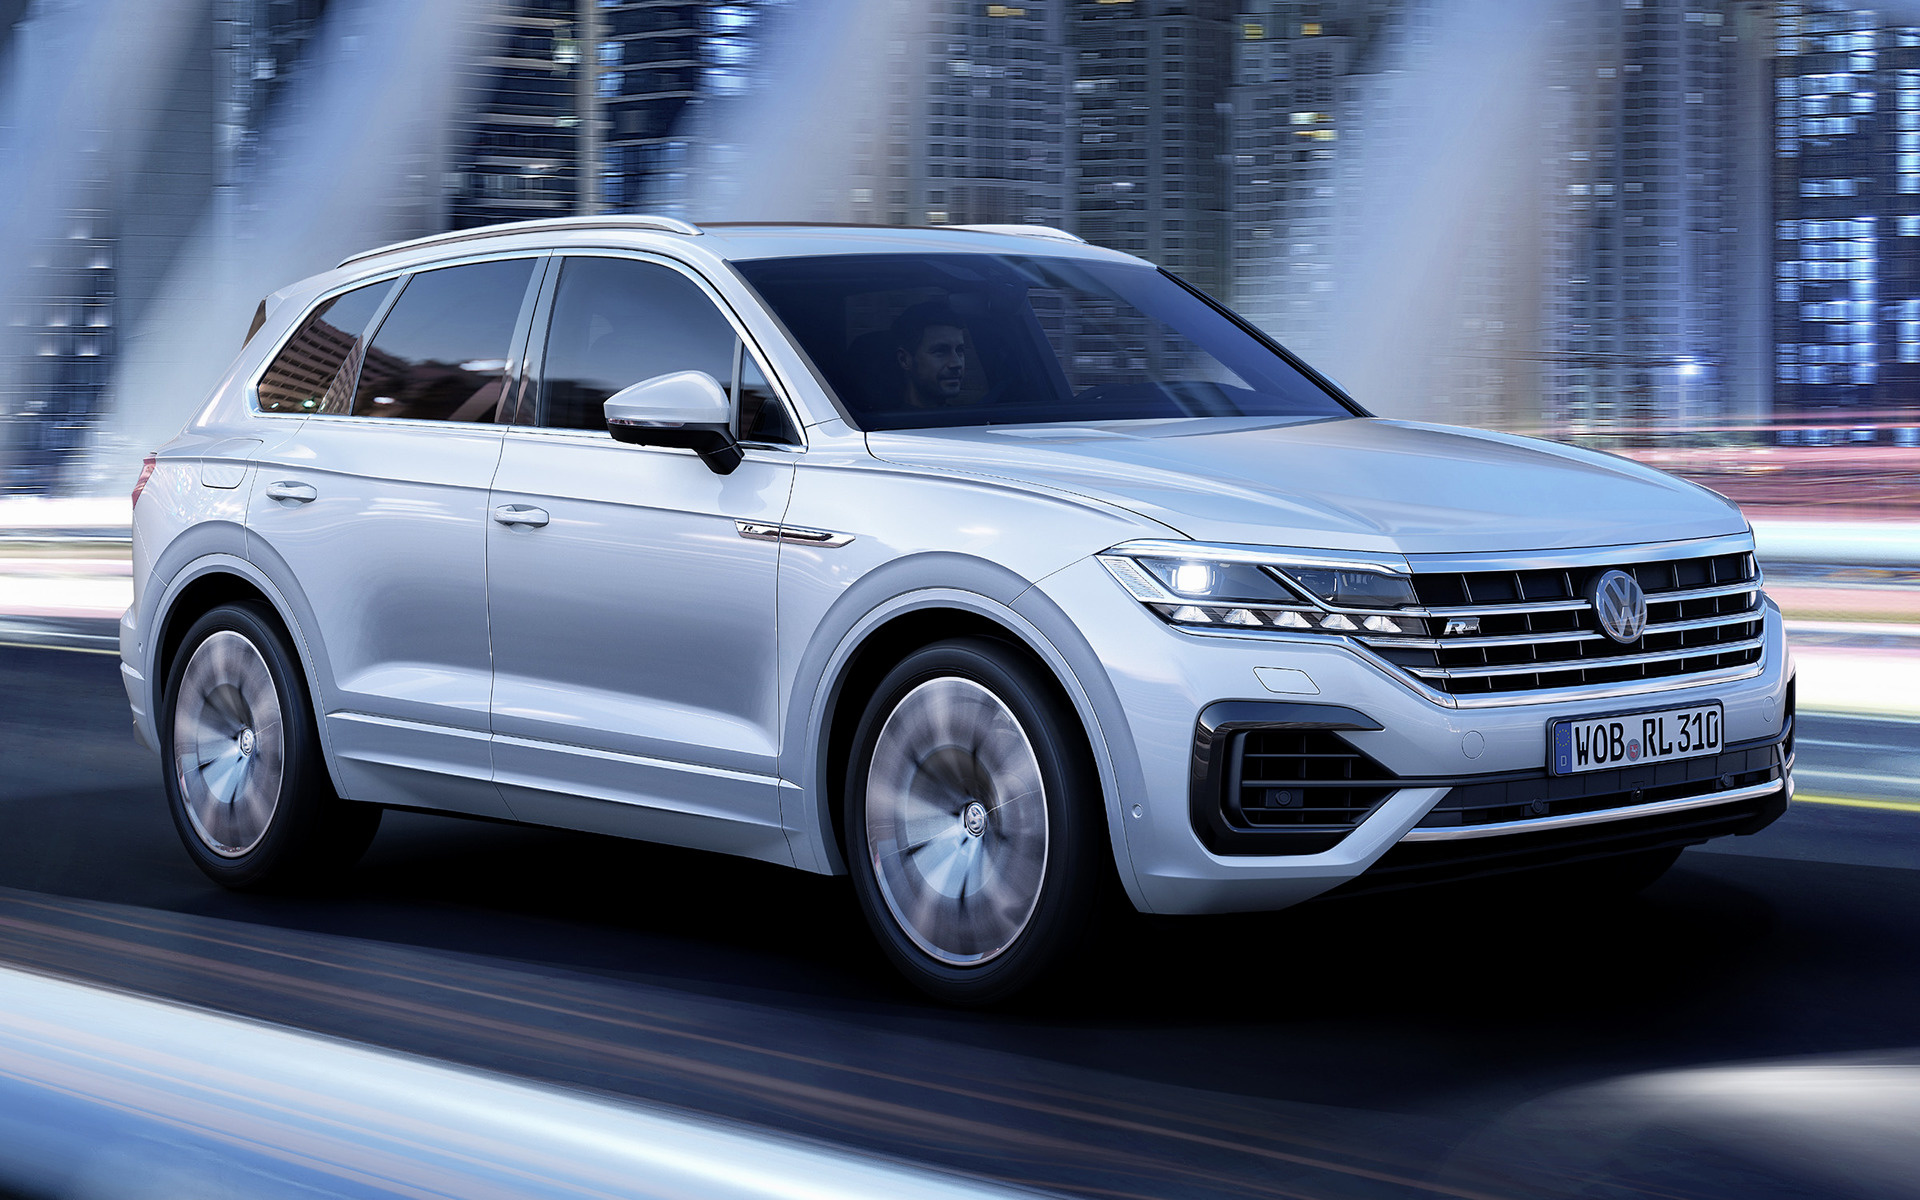 2018 Volkswagen Touareg R-Line - Wallpapers and HD Images ...